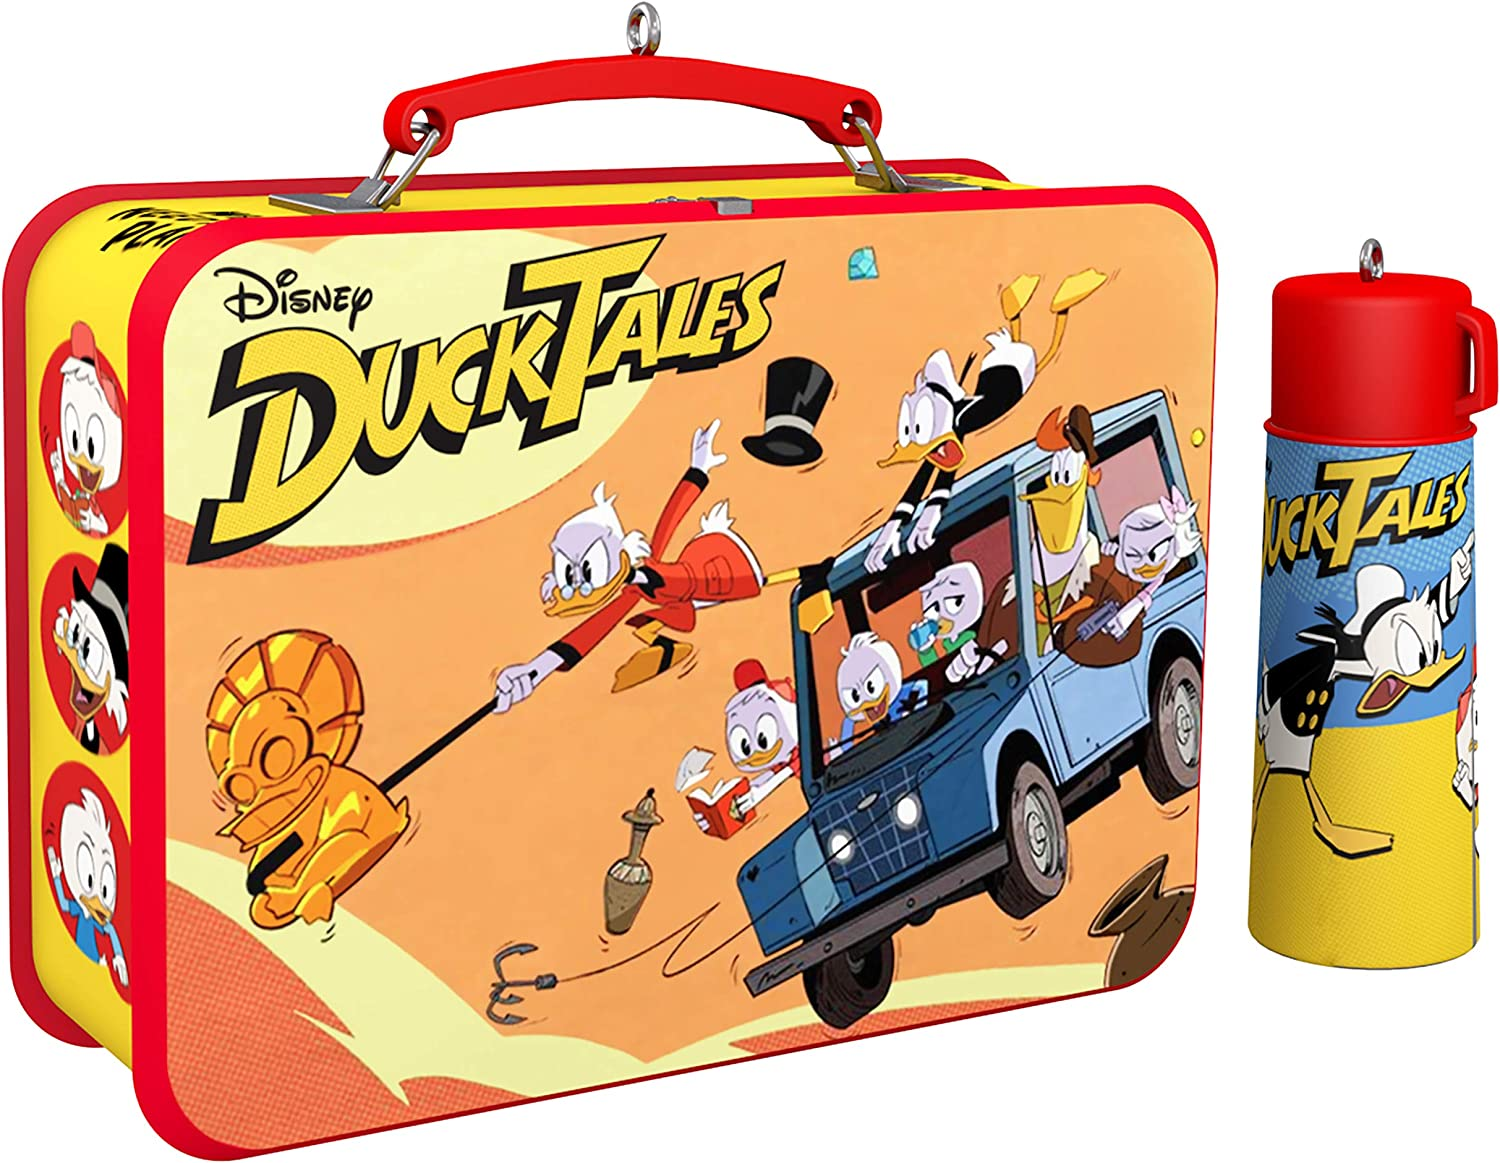 Hallmark Keepsake Christmas 2019 Year Dated Disney DuckTales Lunchbox and Thermos Ornament, Set of 2, 2 Count